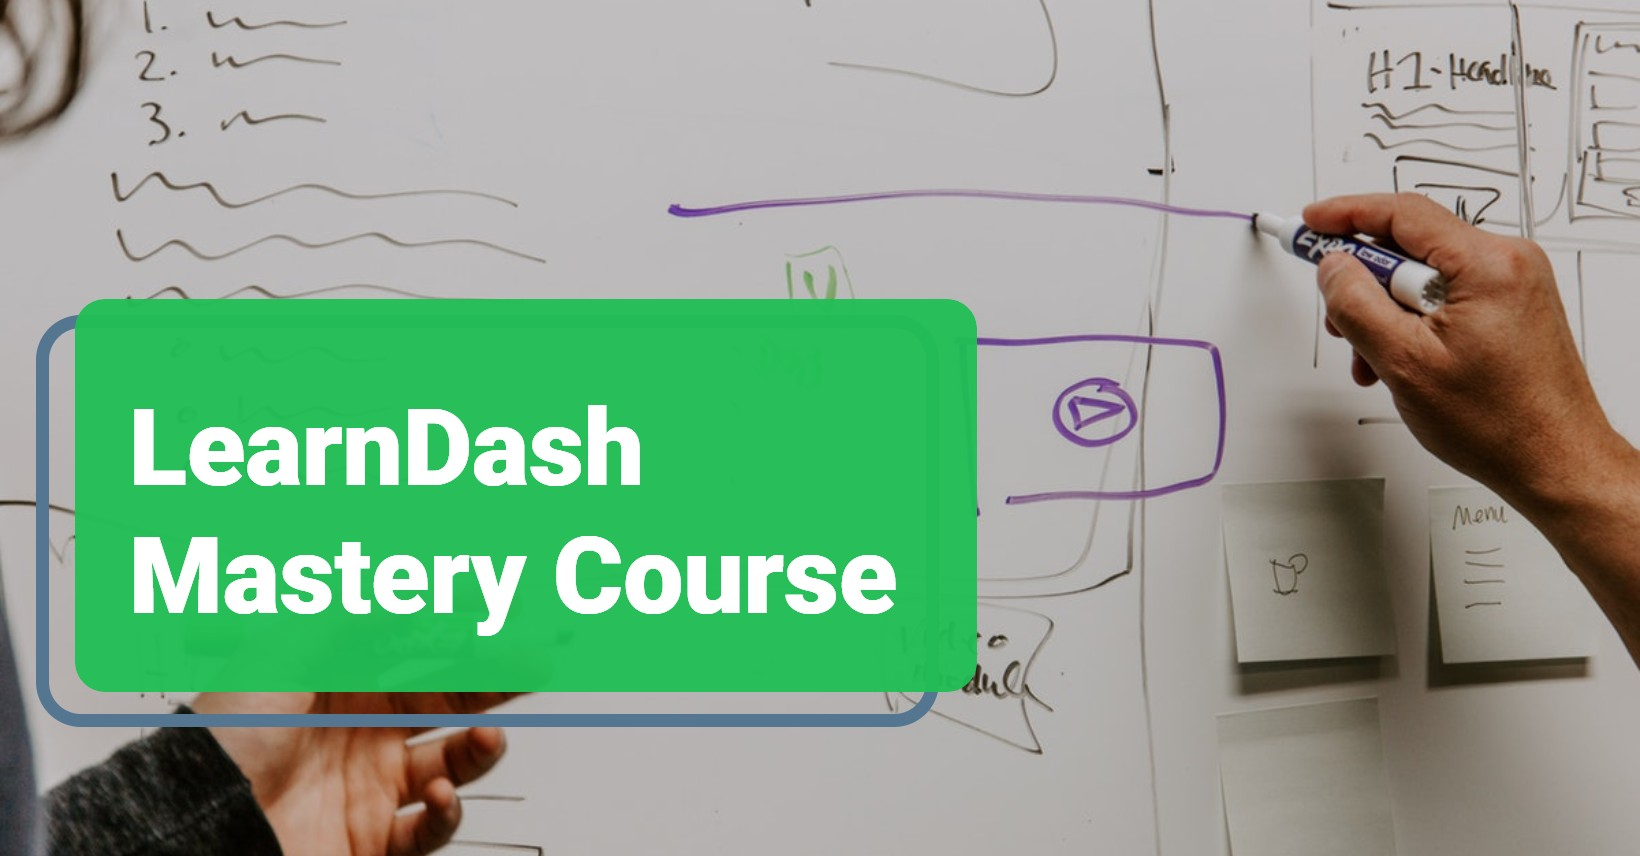 LearnDash Mastery Course2 1 -